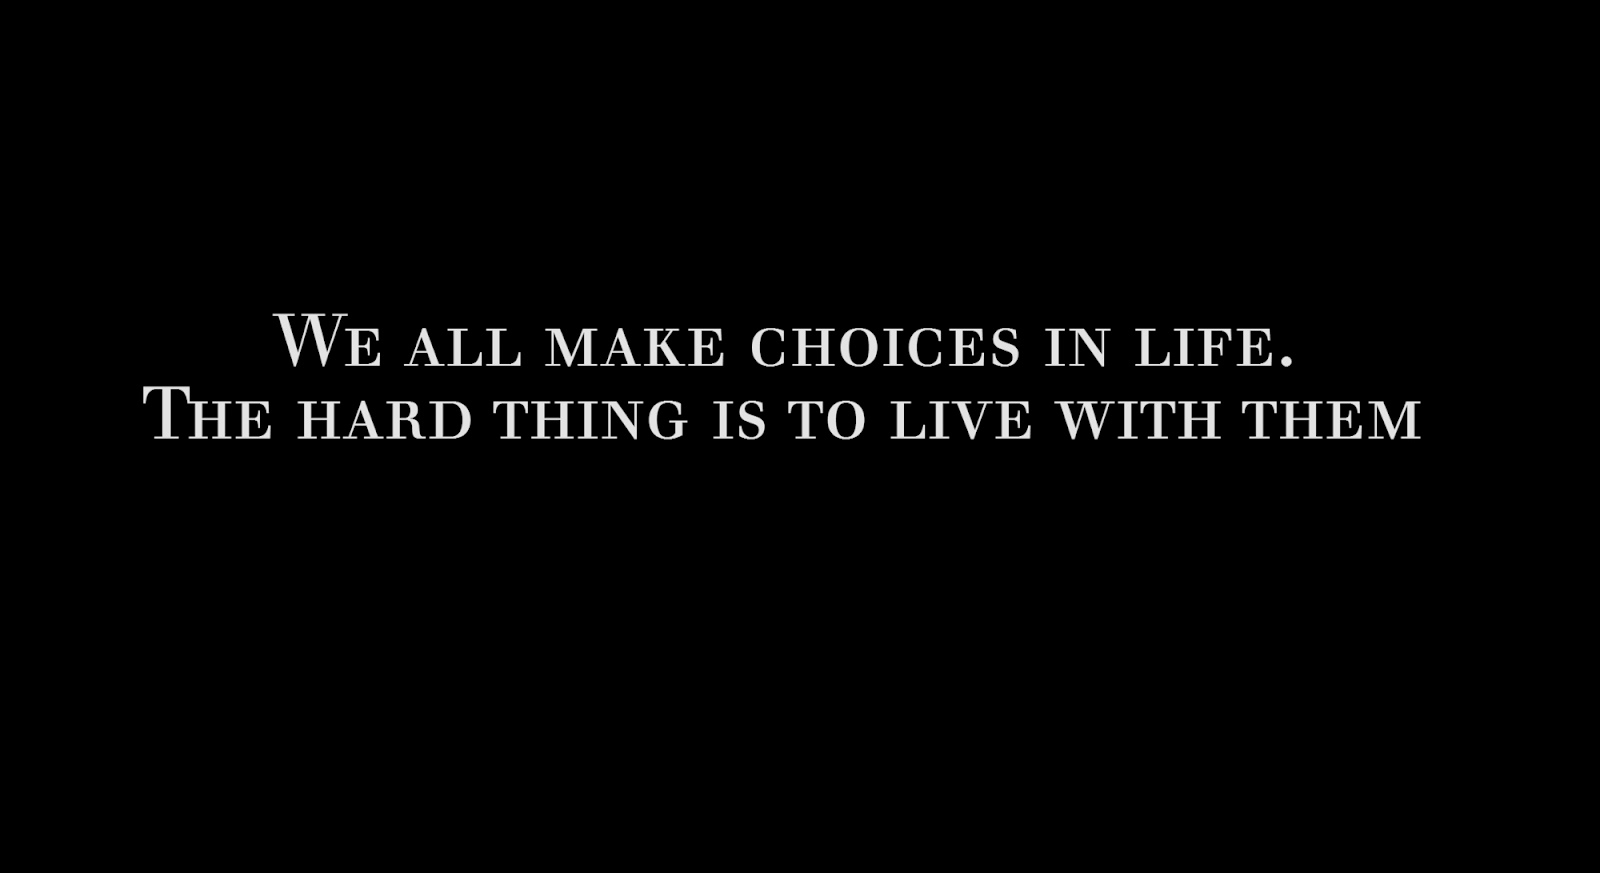 We all make choices in life. The hard thing is to live with them